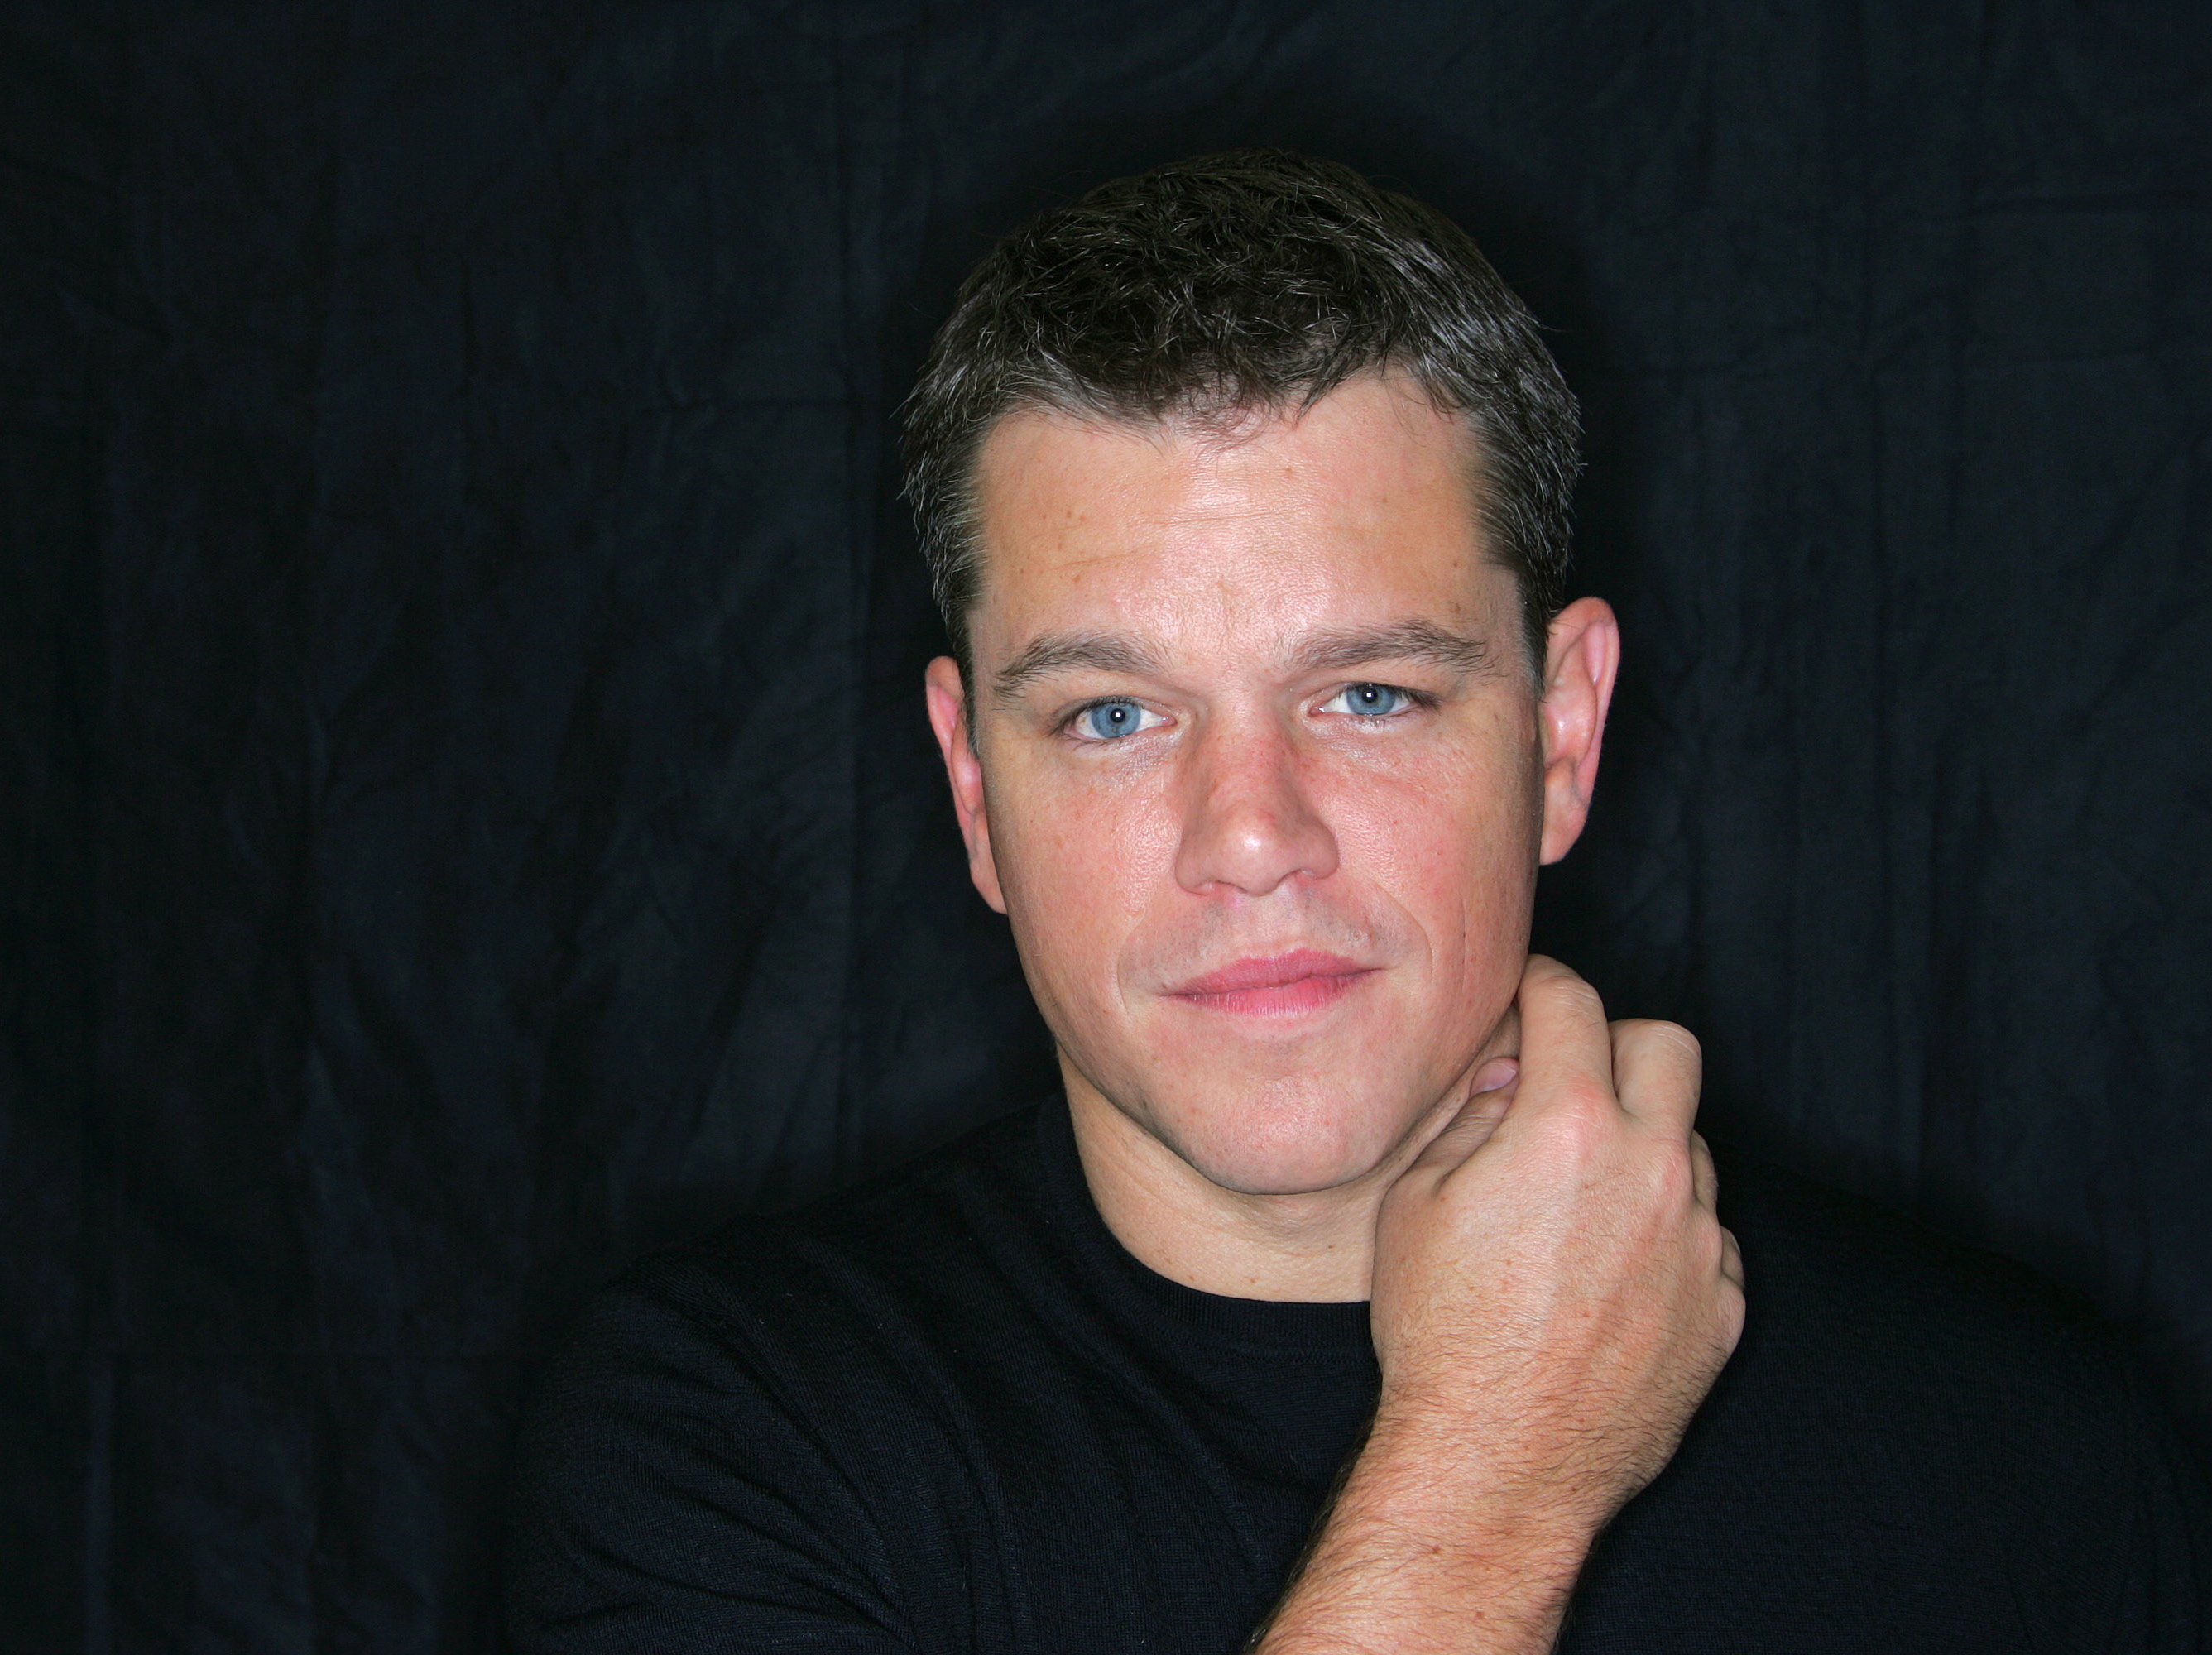 5. Matt Damon